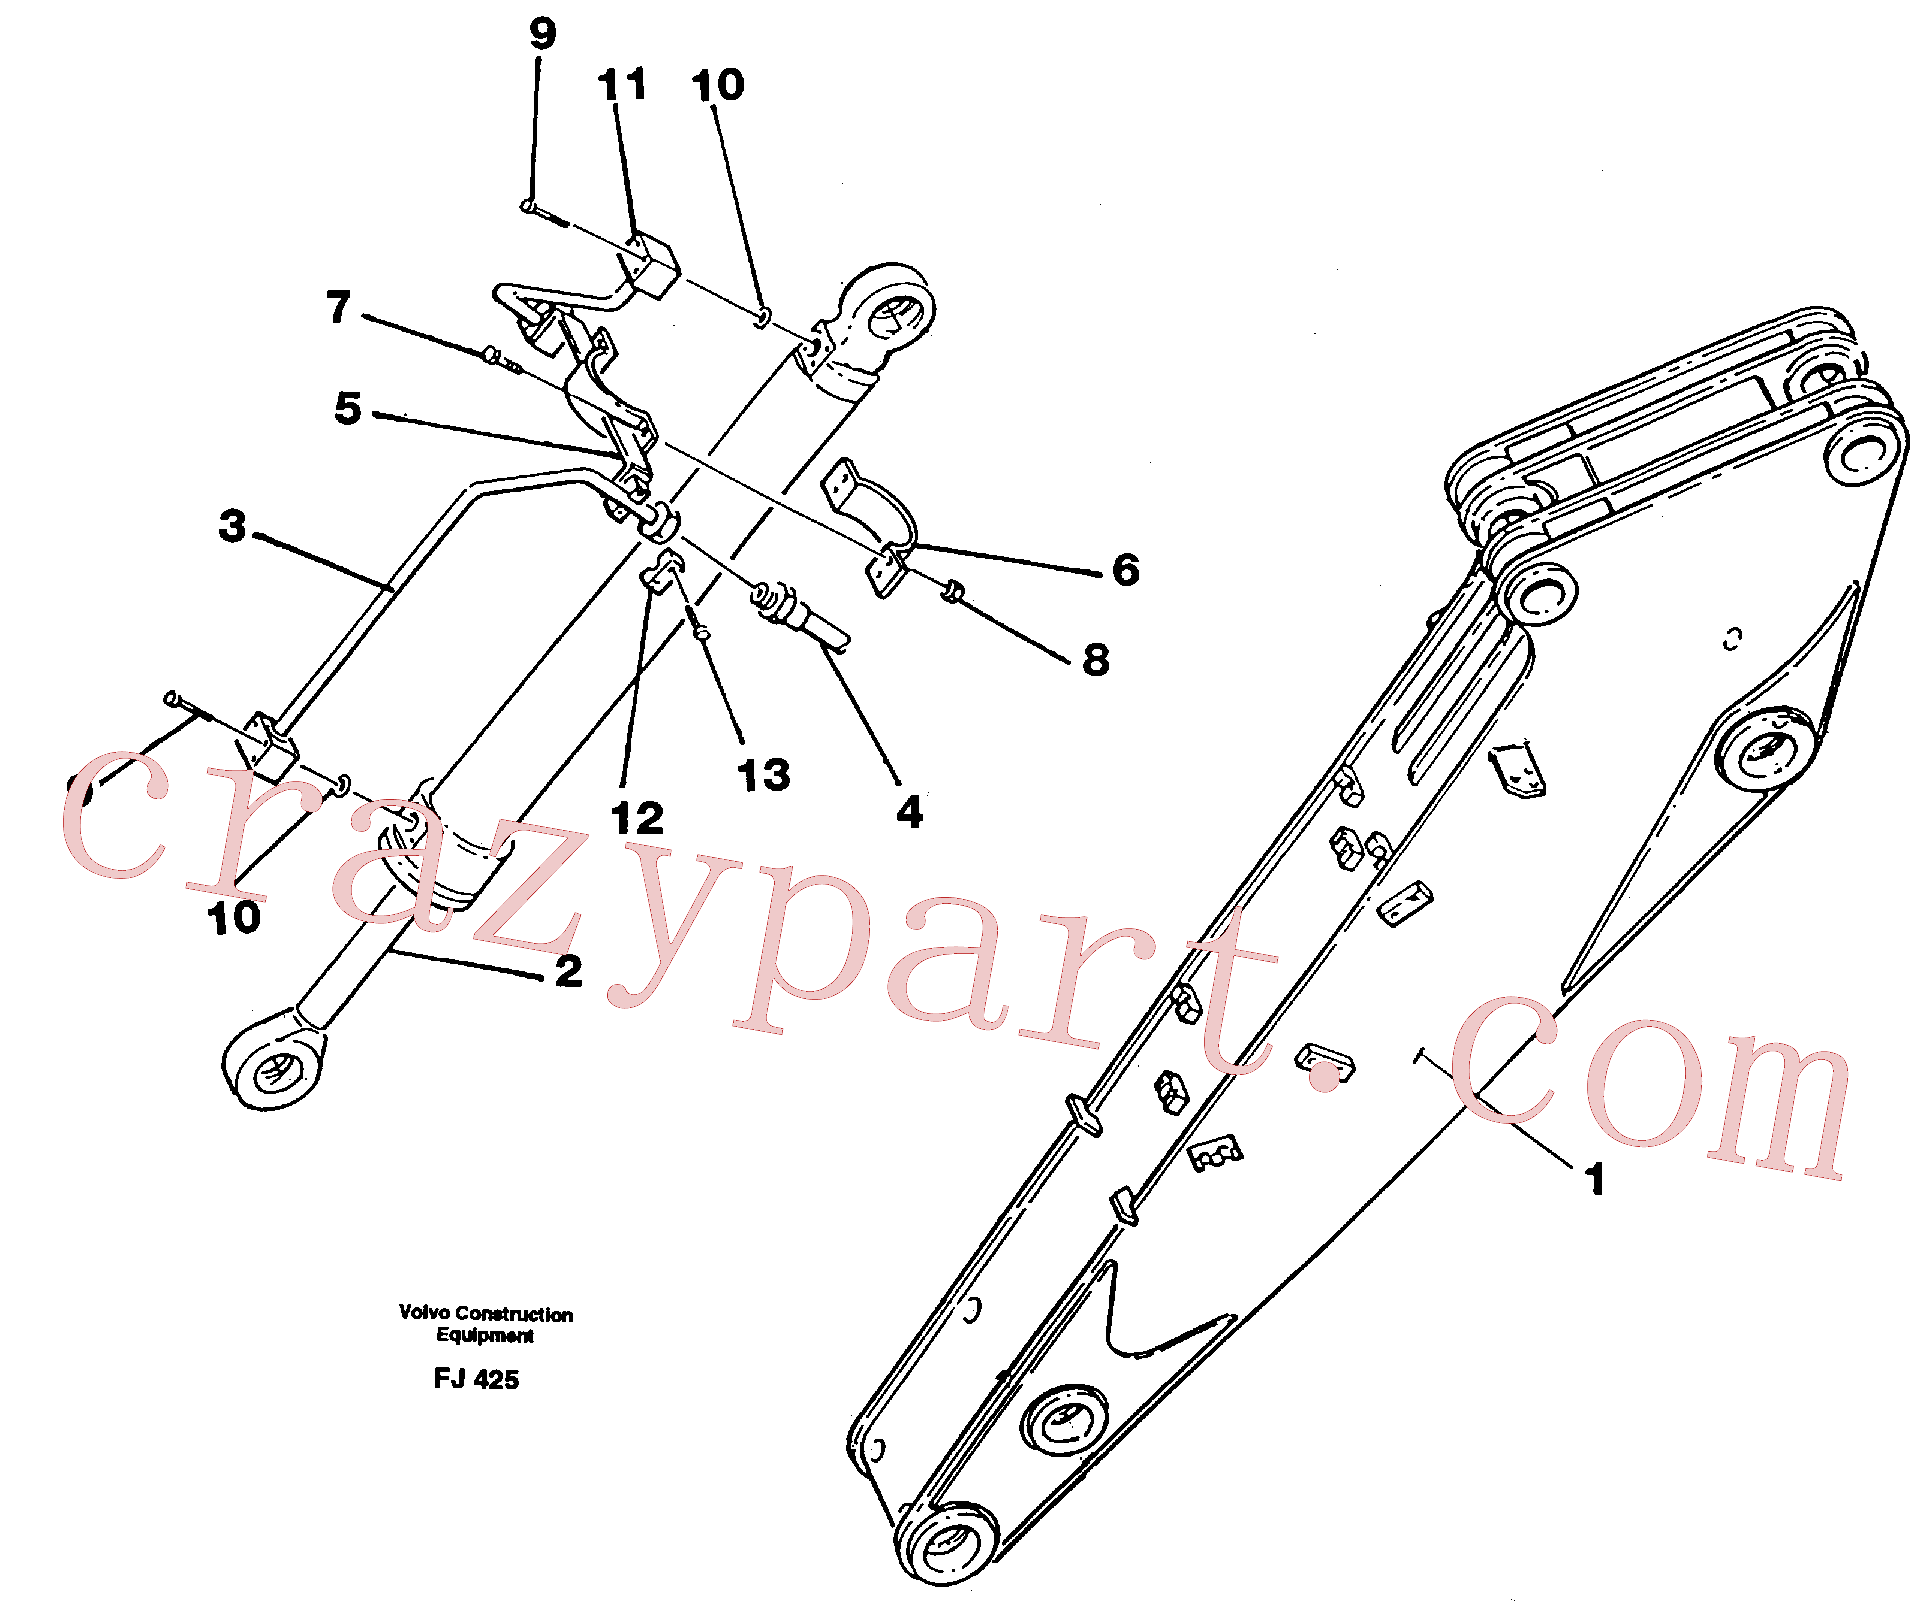 VOE14053582 for Volvo Hydraulic system, dipperarm(FJ425 assembly)